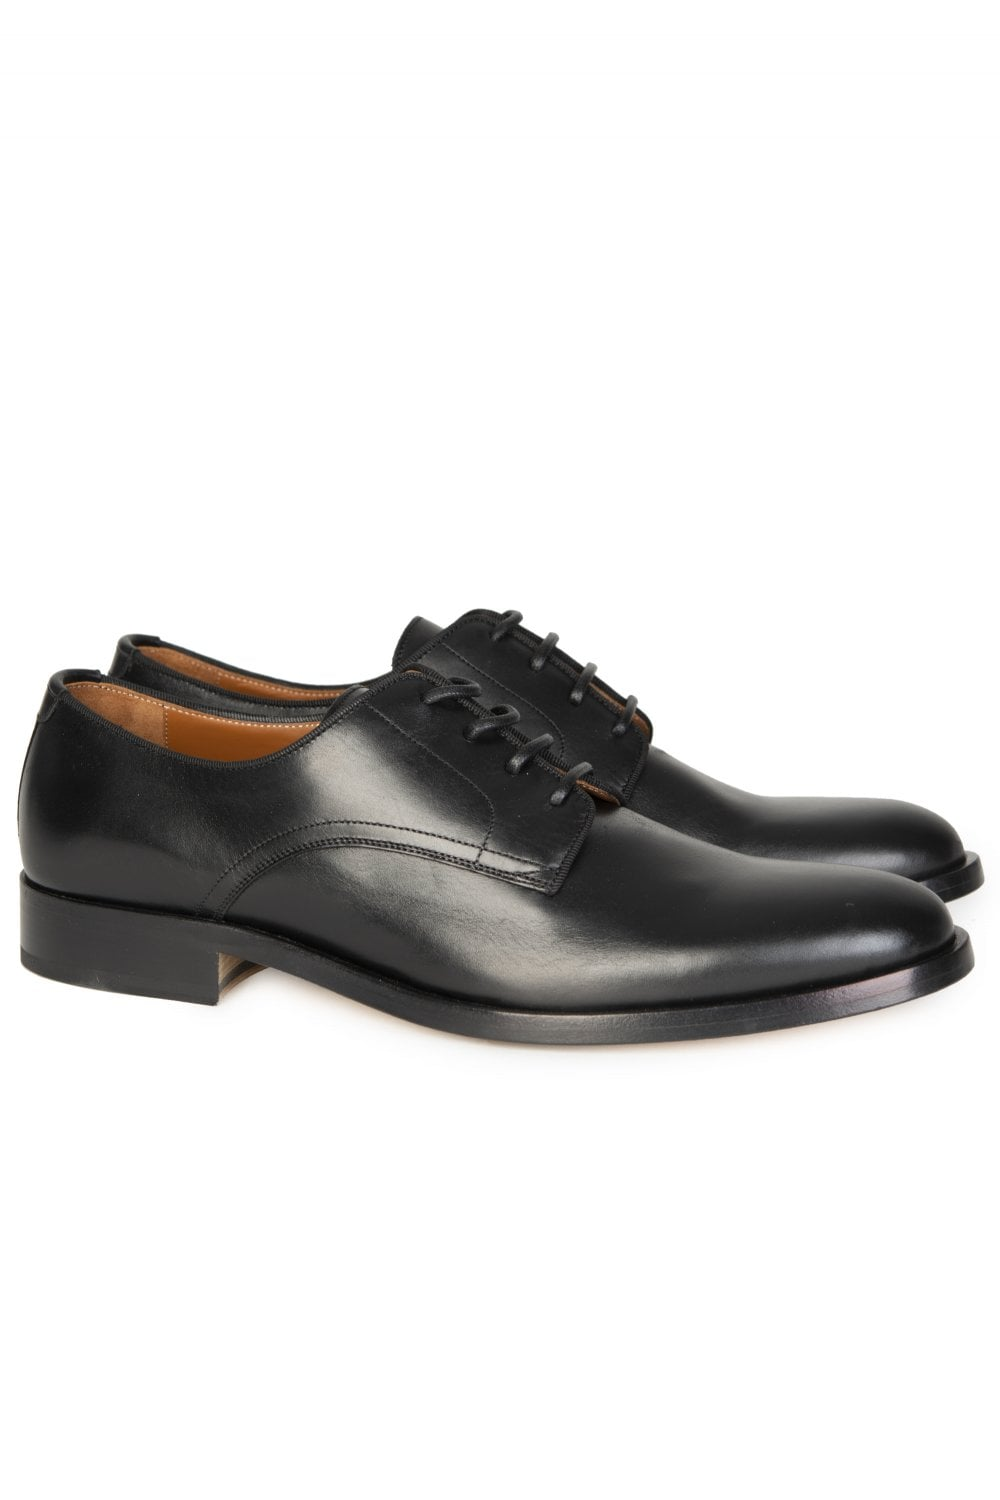 GIVENCHY Givenchy Rider Derby Formal Shoes - Clothing from Circle ... 930079f9e92c